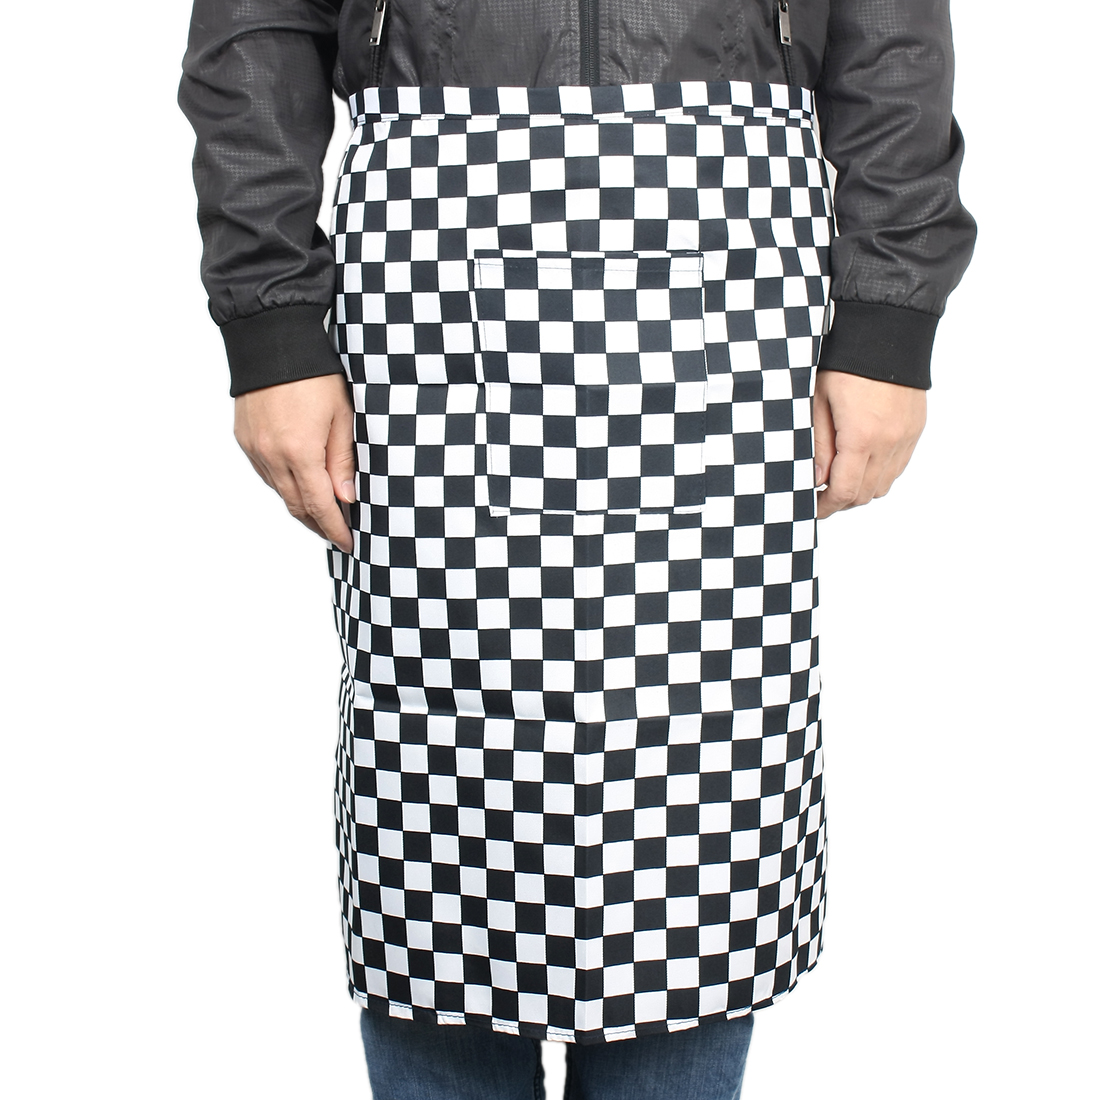 Man Cafe Barber Shop Restaurant Cooking Grid Pattern Fabric Pocket Apron Bib